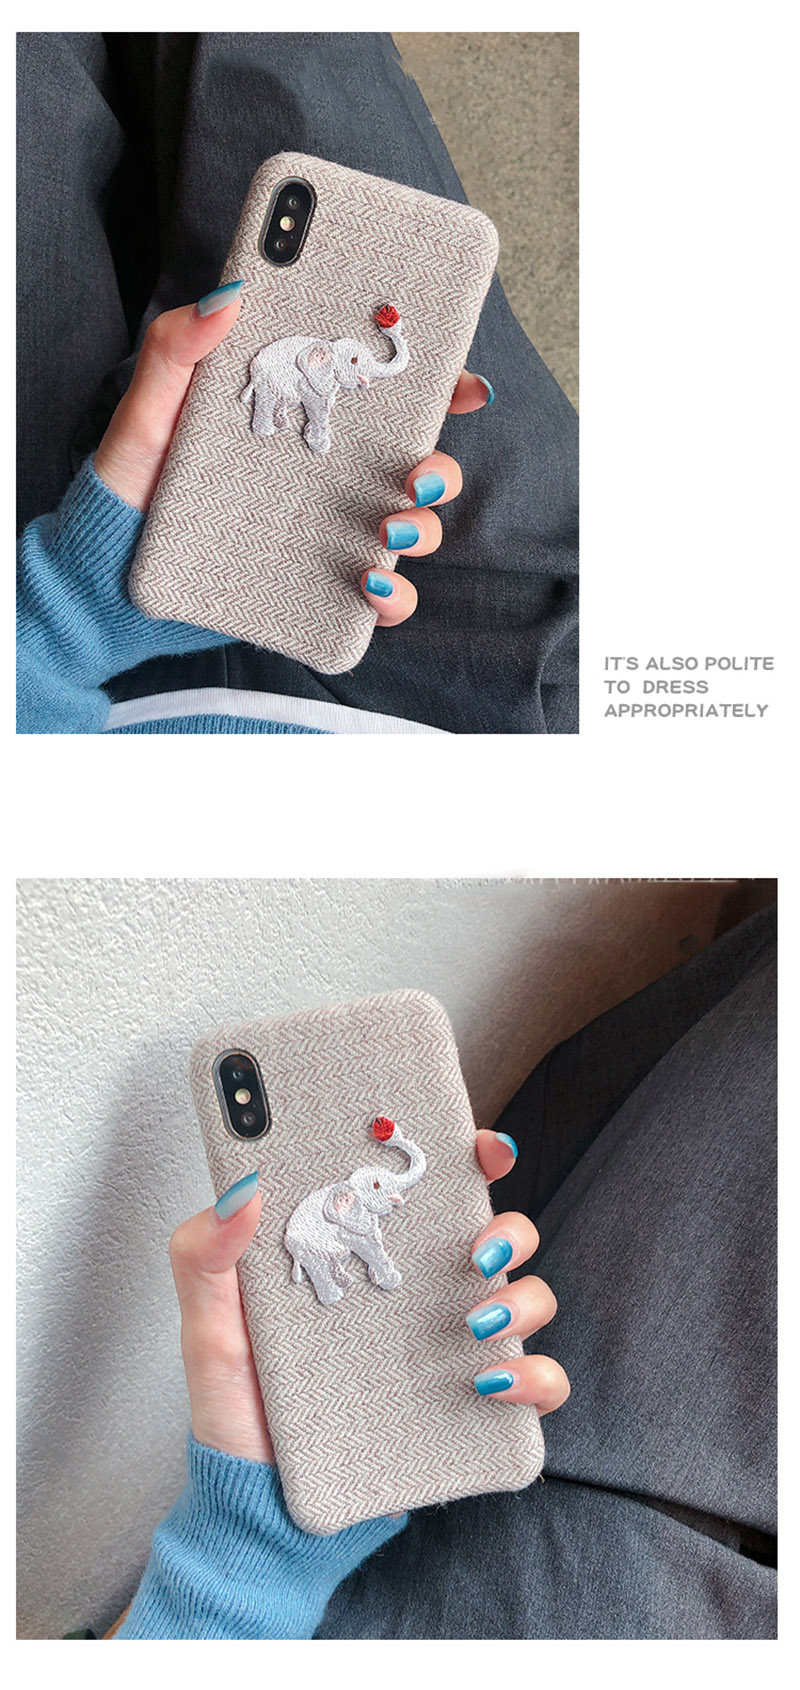 Cute Embroidered Elephant Phone Case For iPhone - Photo 3